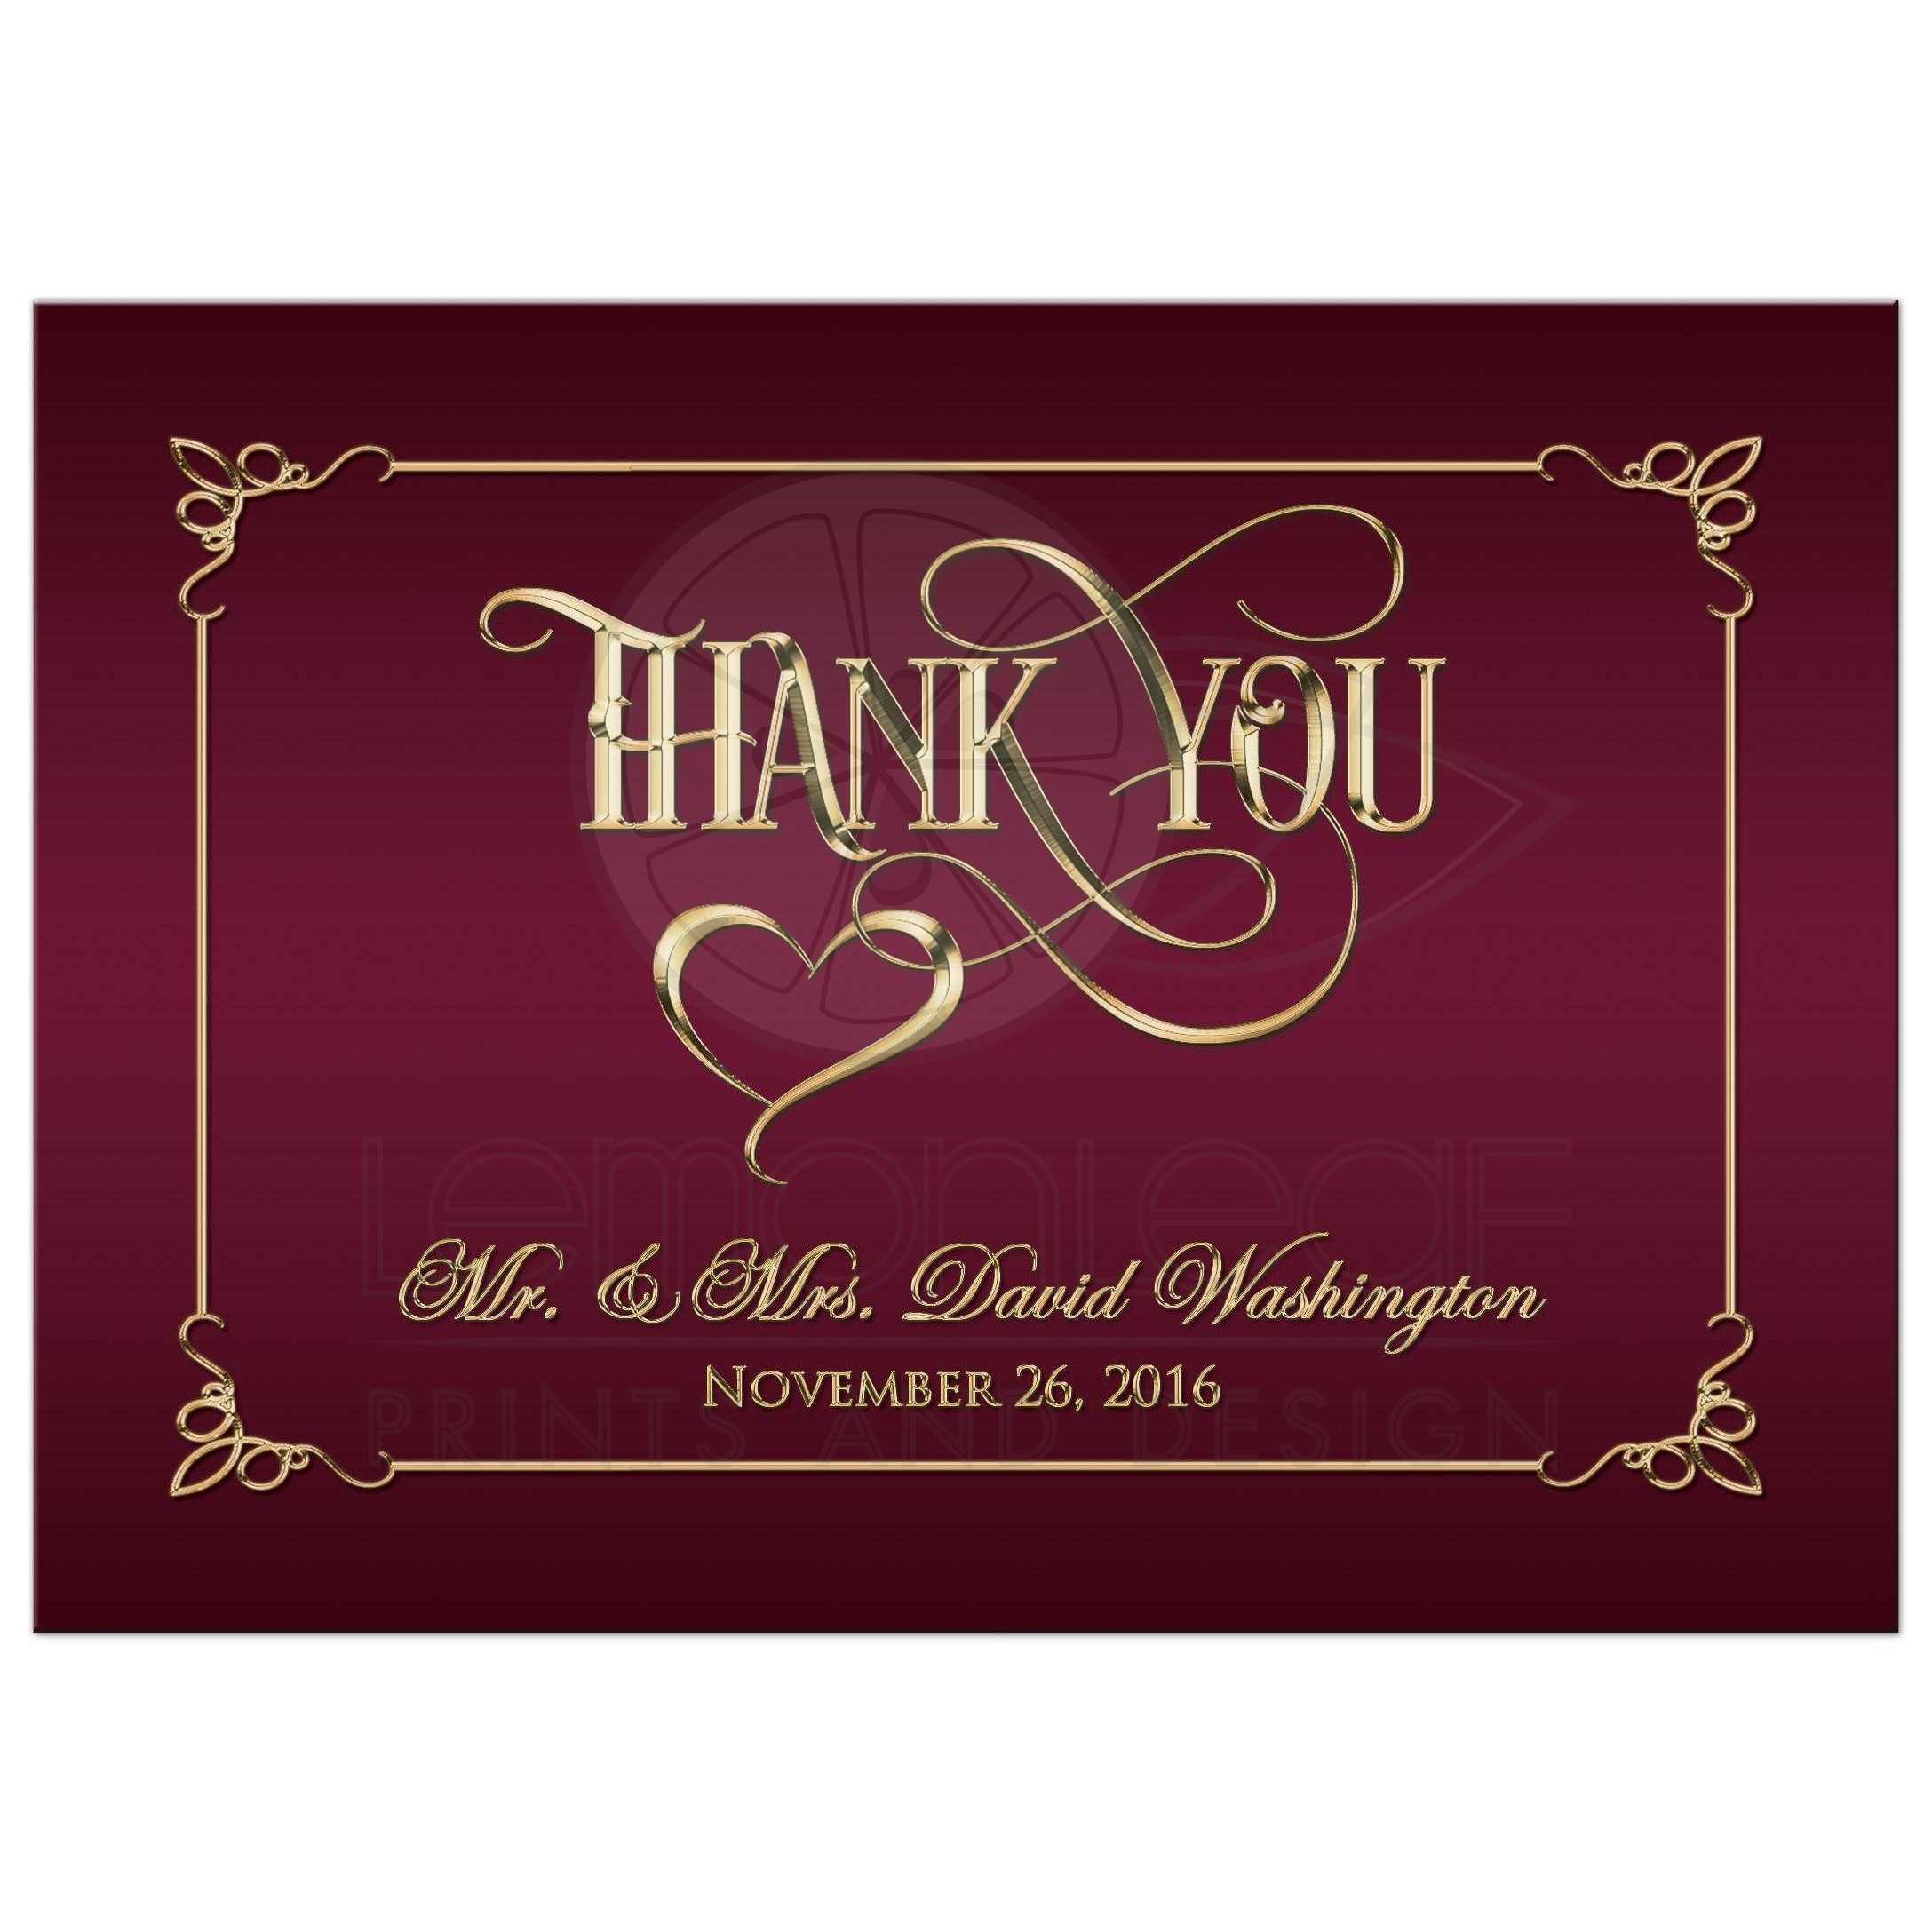 5x7 PHOTO Thank You Card | Burgundy, Gold Ornate Scrolls, Heart